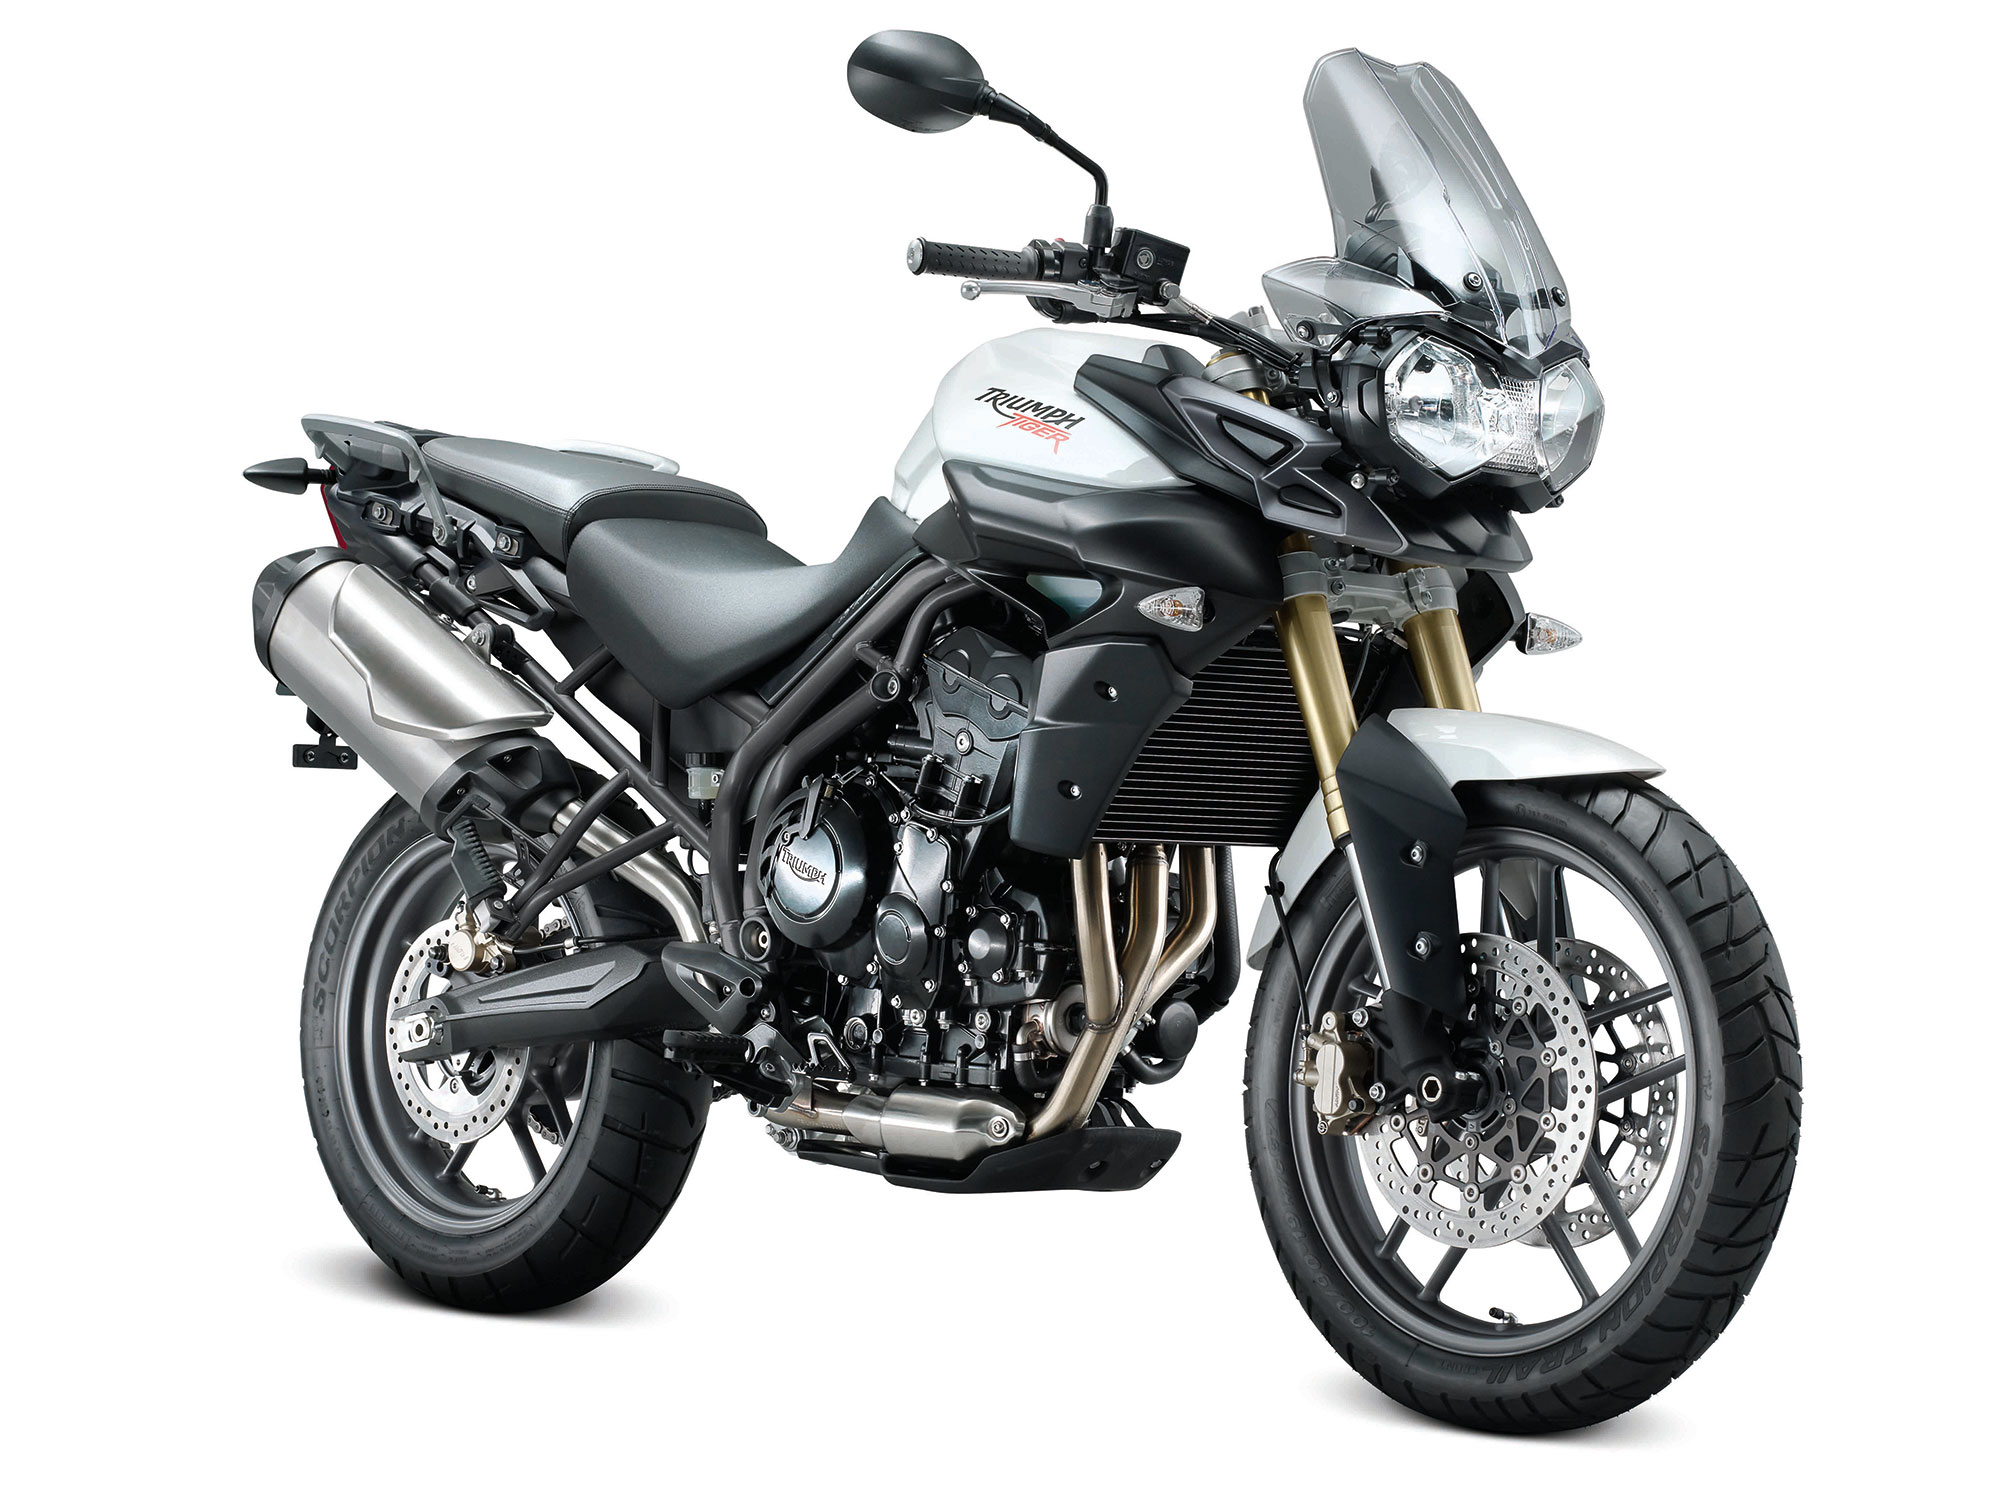 2014 Triumph Tiger 800 ABS Review